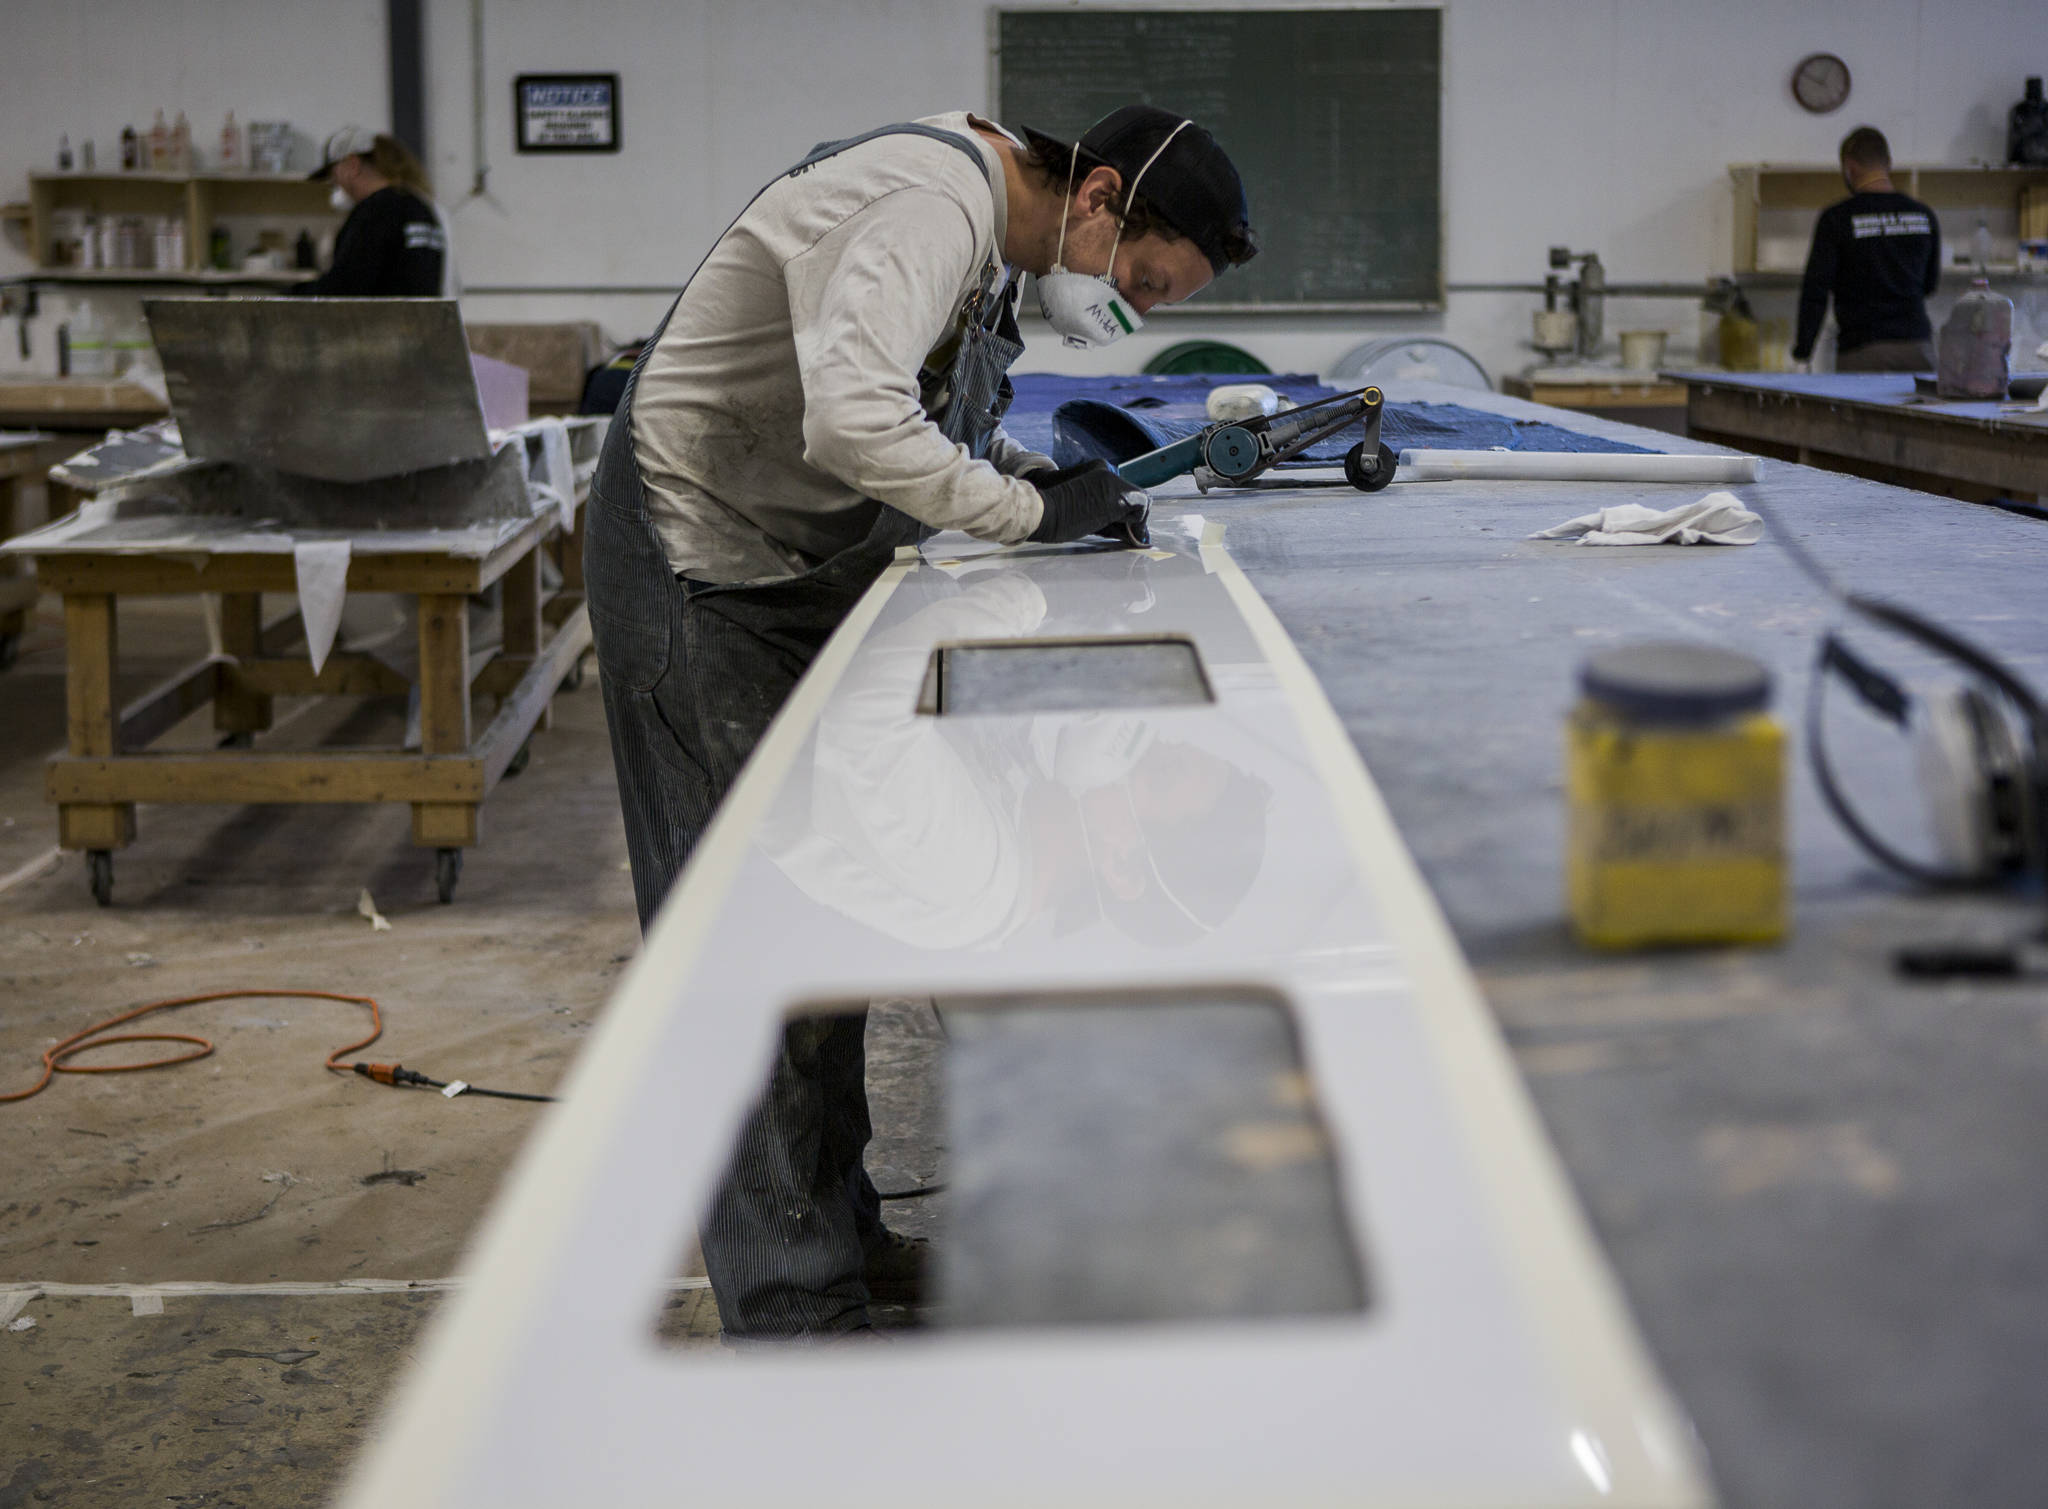 Pocock Racing Shells in Everett depends on college football programs, which are major sources of revenue for less-lucrative sports like rowing. (Olivia Vanni / The Herald)